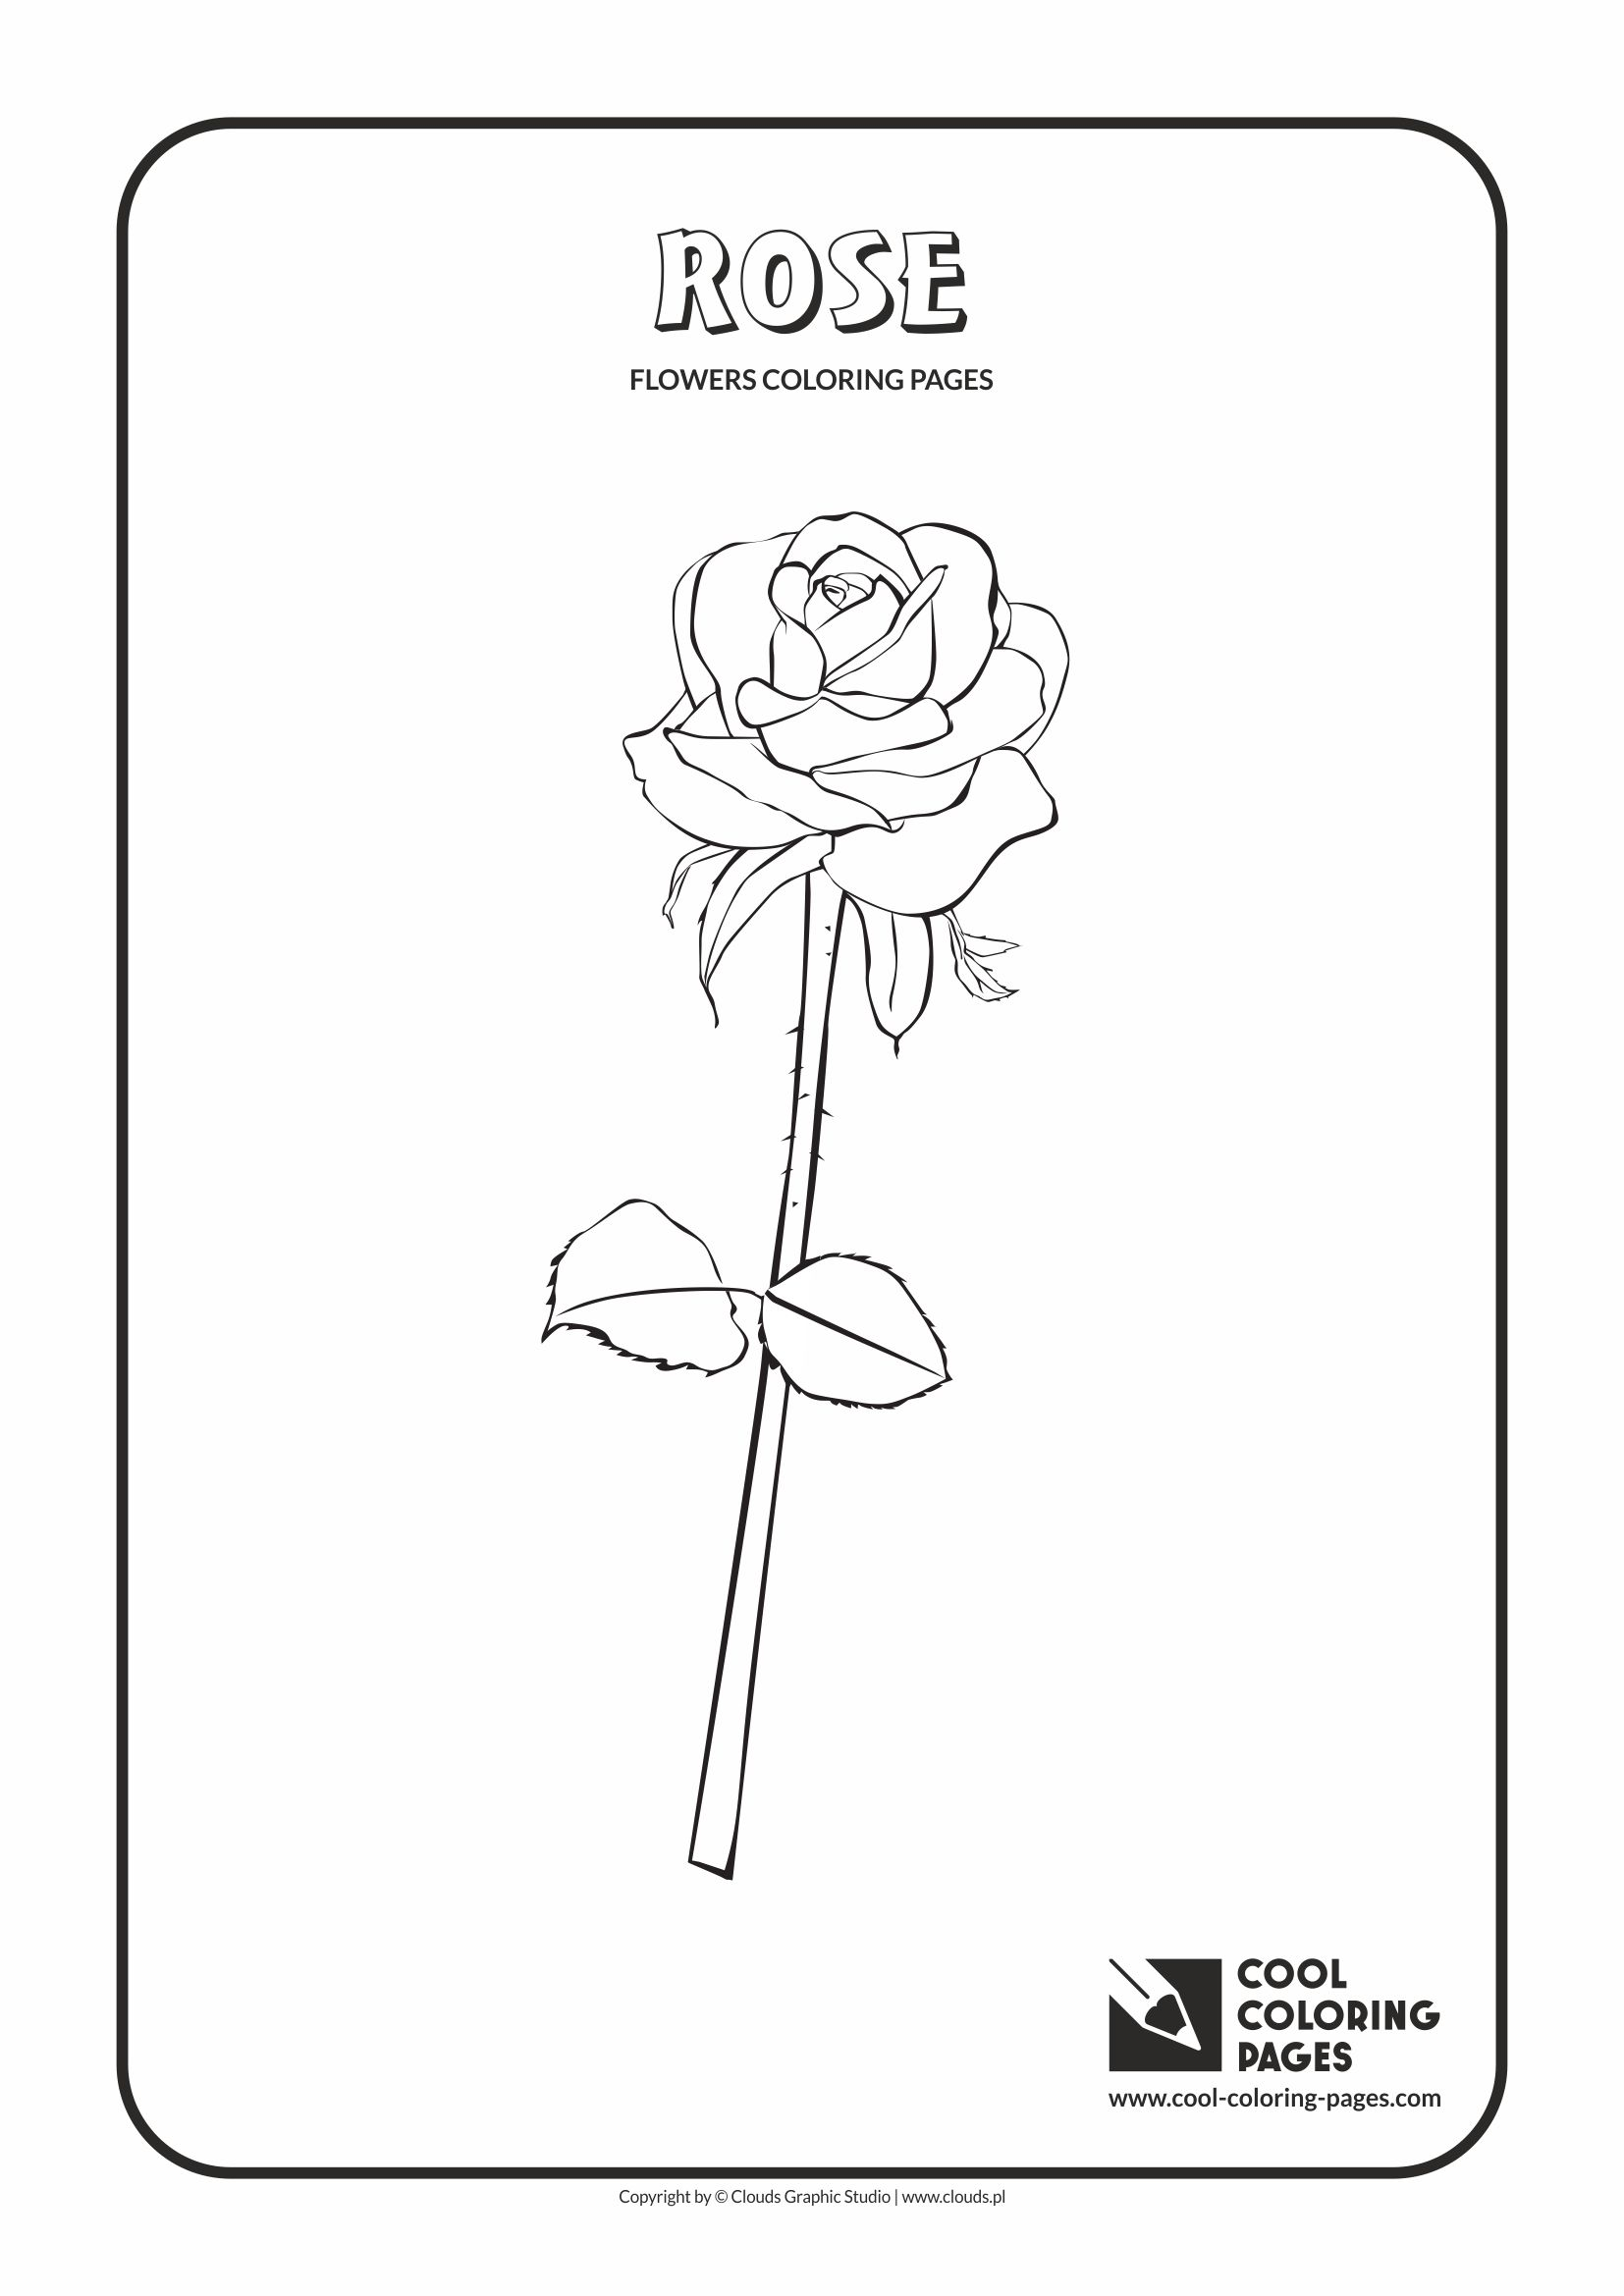 Cool Coloring Pages - Plants / Rose / Coloring page with rose